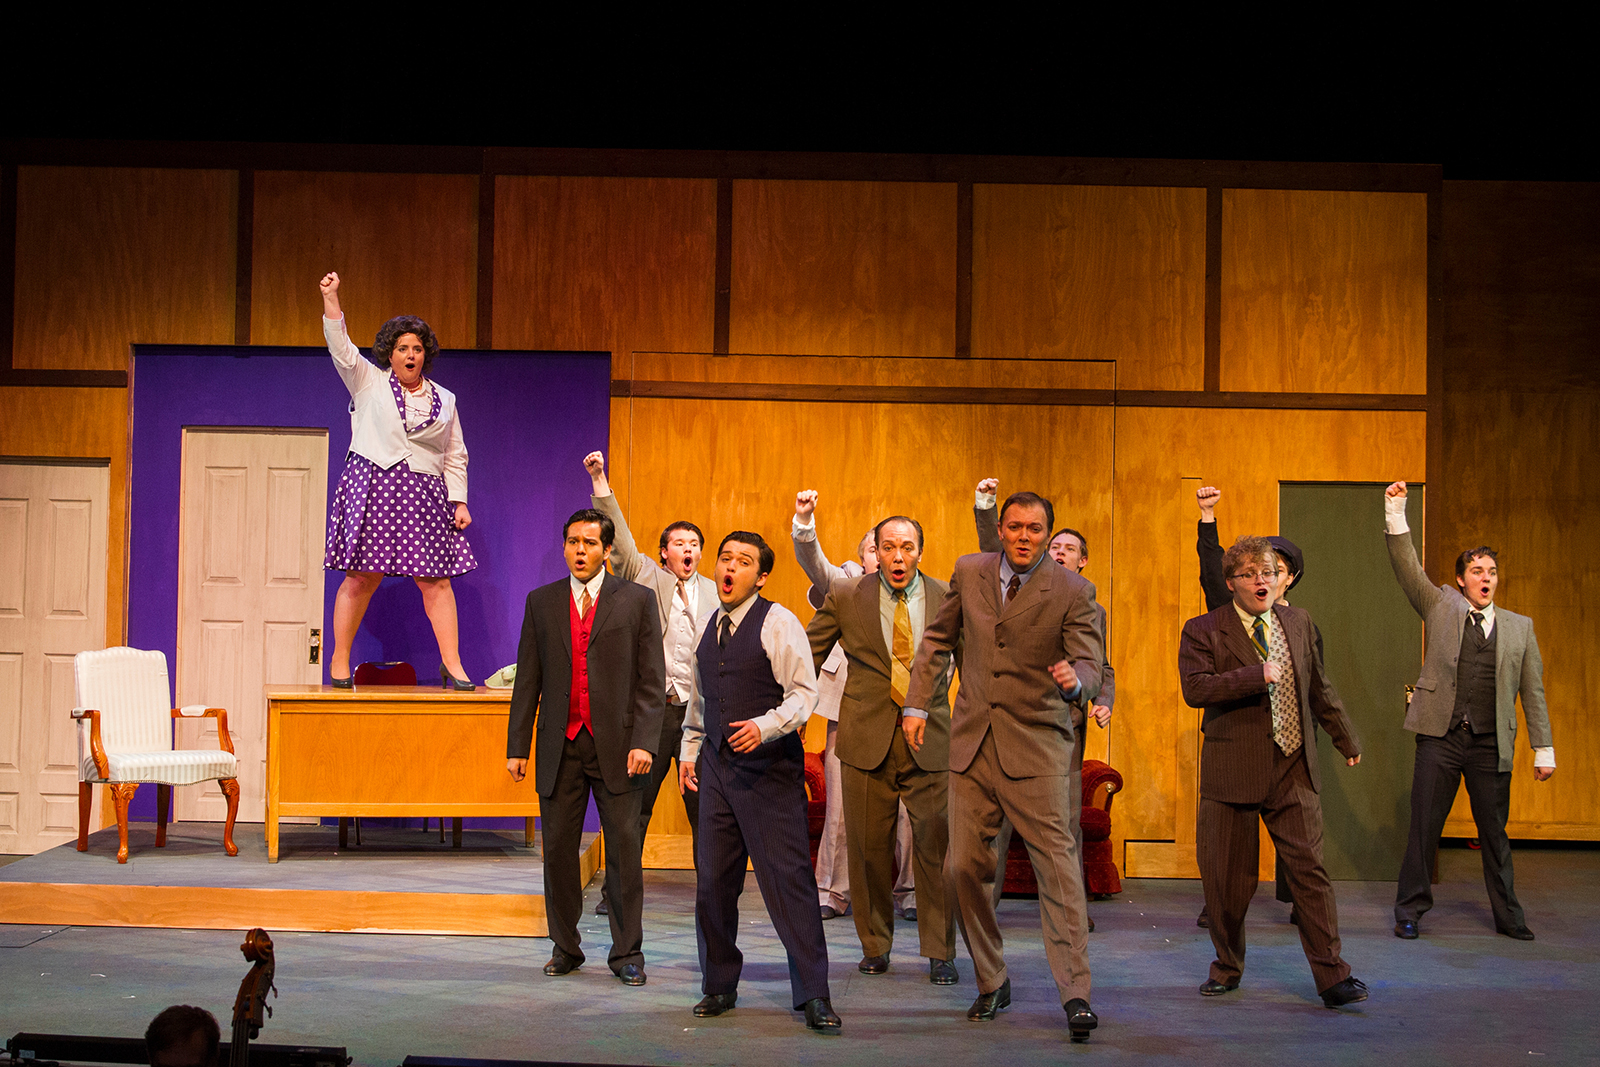 photo from How to Succeed in Business Without Really Trying